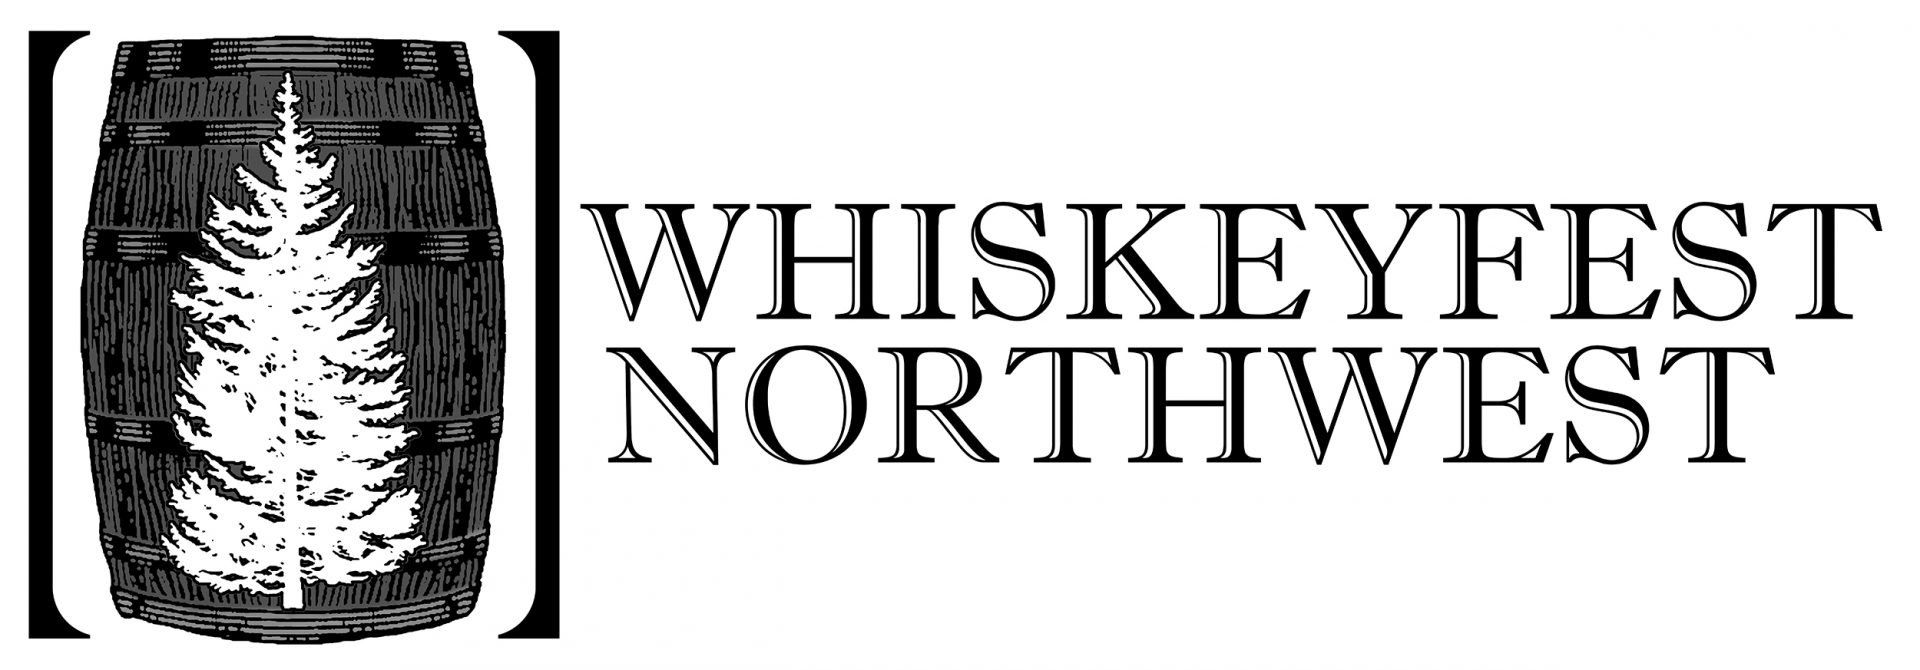 Whiskeyfest Northwest Sticker